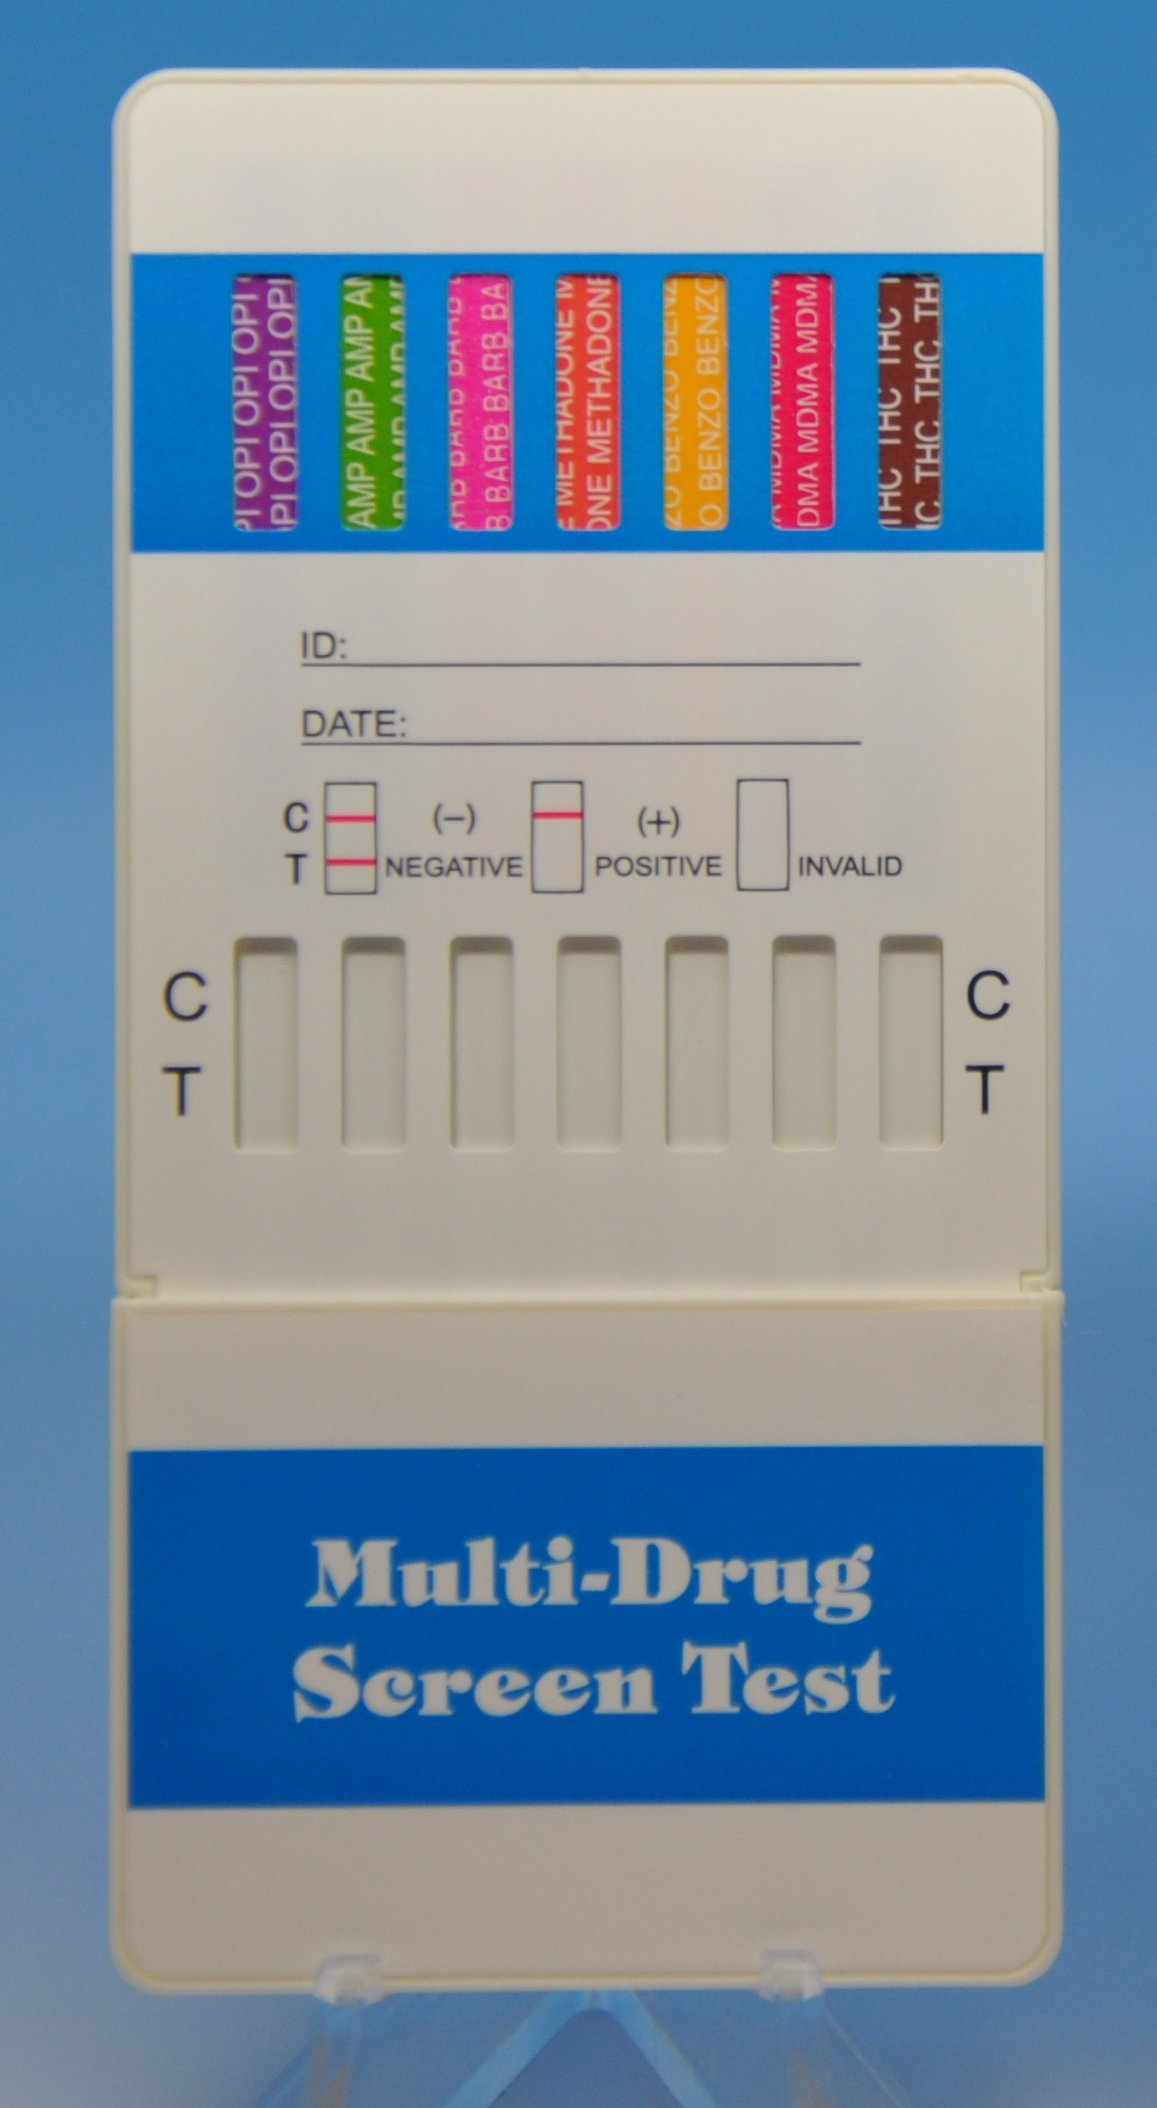 12 Panel Dip Card Test Kit, Pack Of 10 Units, FDA Cleared, CLIA Waived and OTC approved